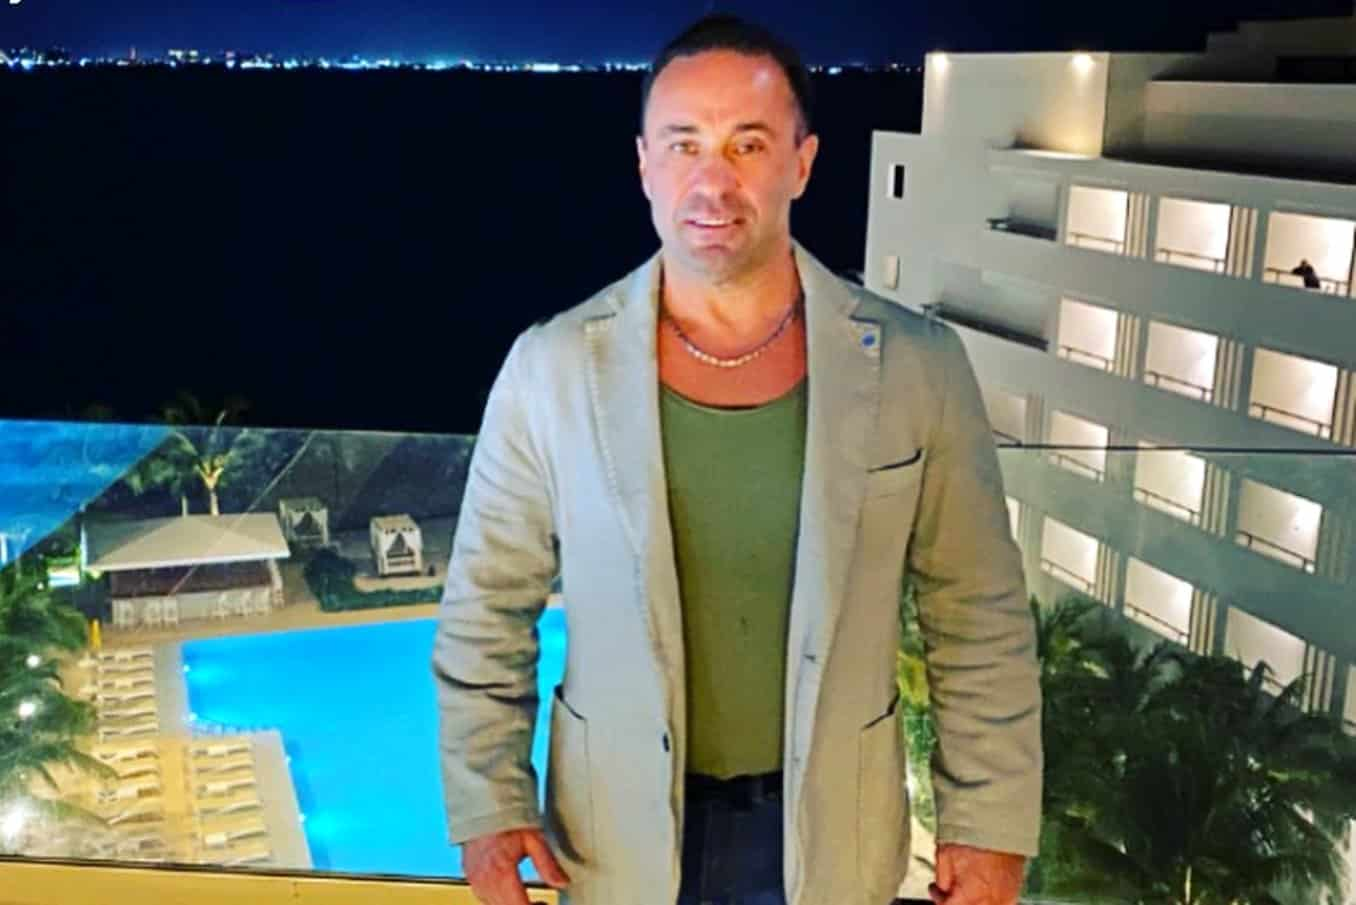 RHONJ'S Joe Giudice Has Reunited With His Daughters In Italy For The First Time In A Year, See Their Sweet Reunion Pics